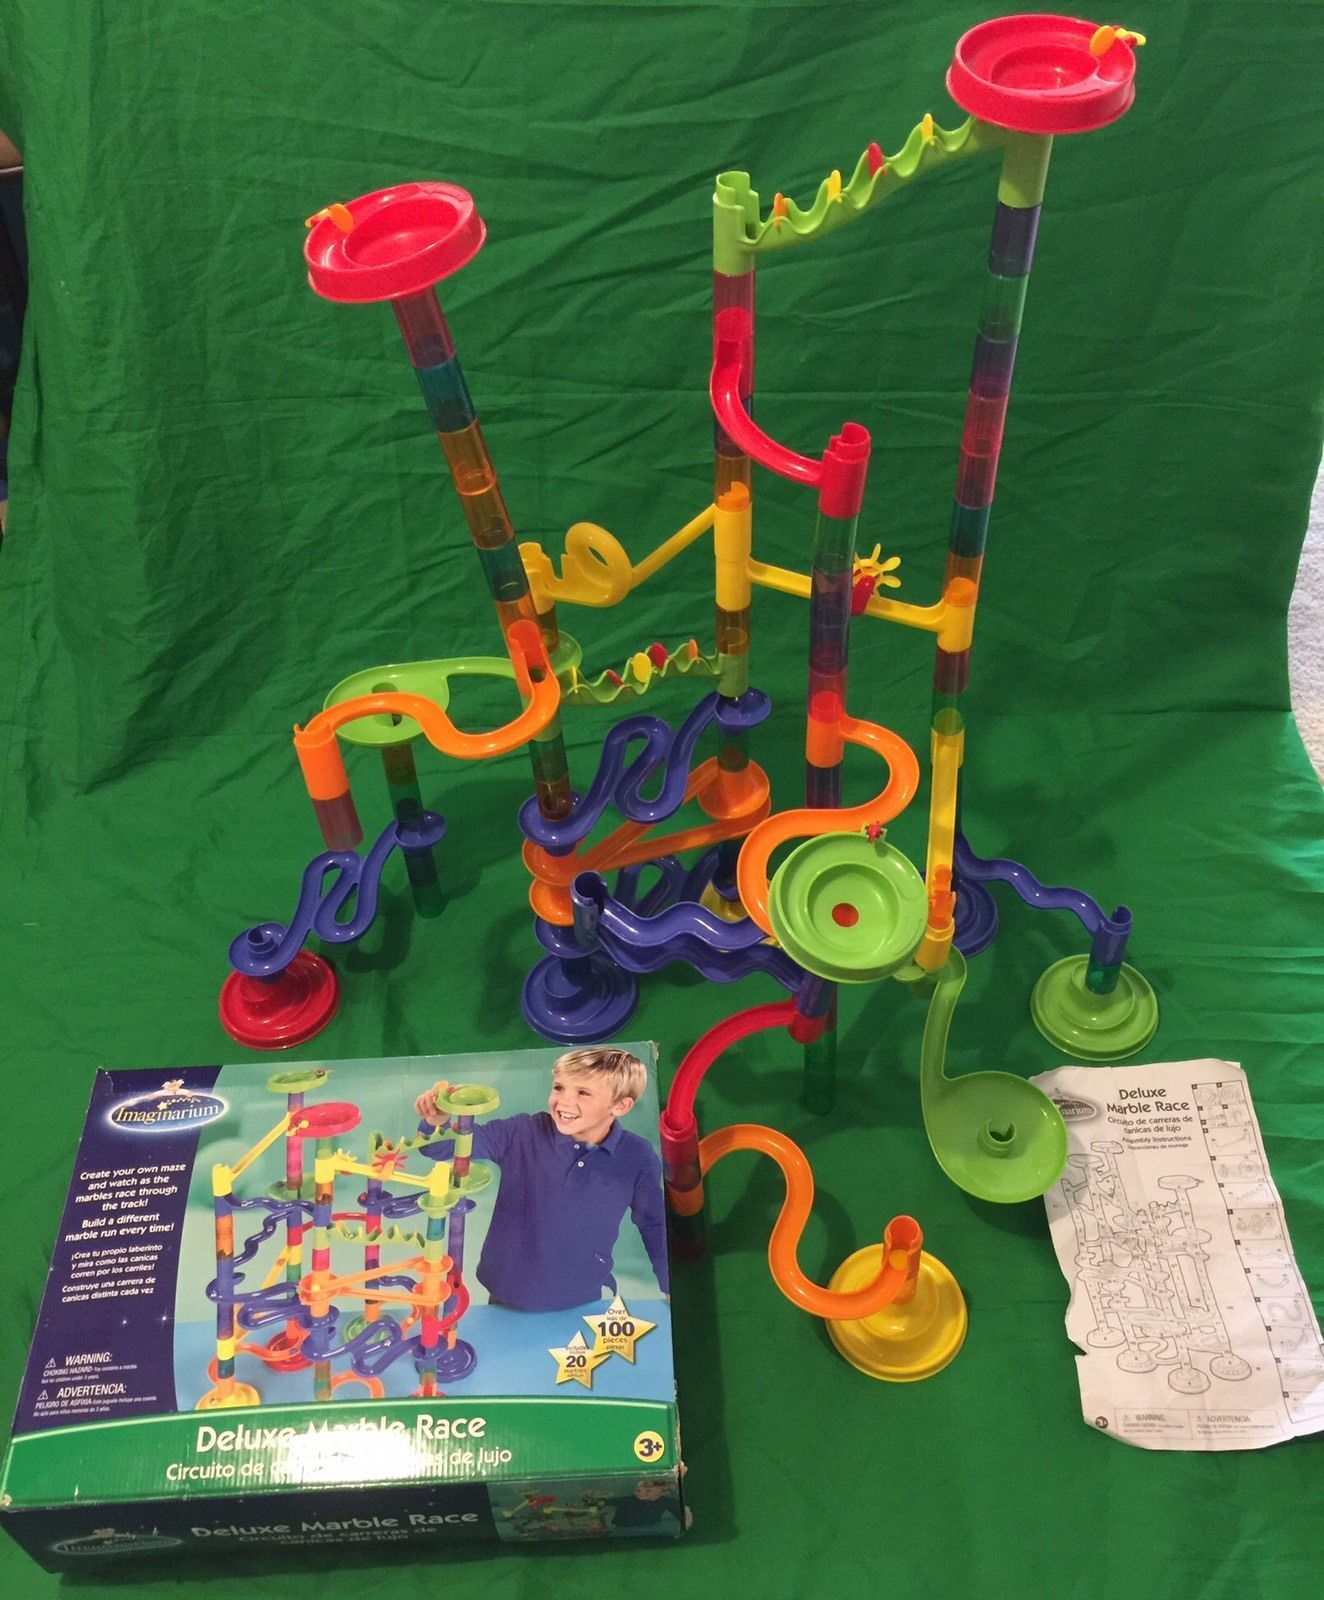 ToysRUs Imaginarium Deluxe Marble Race comes with over